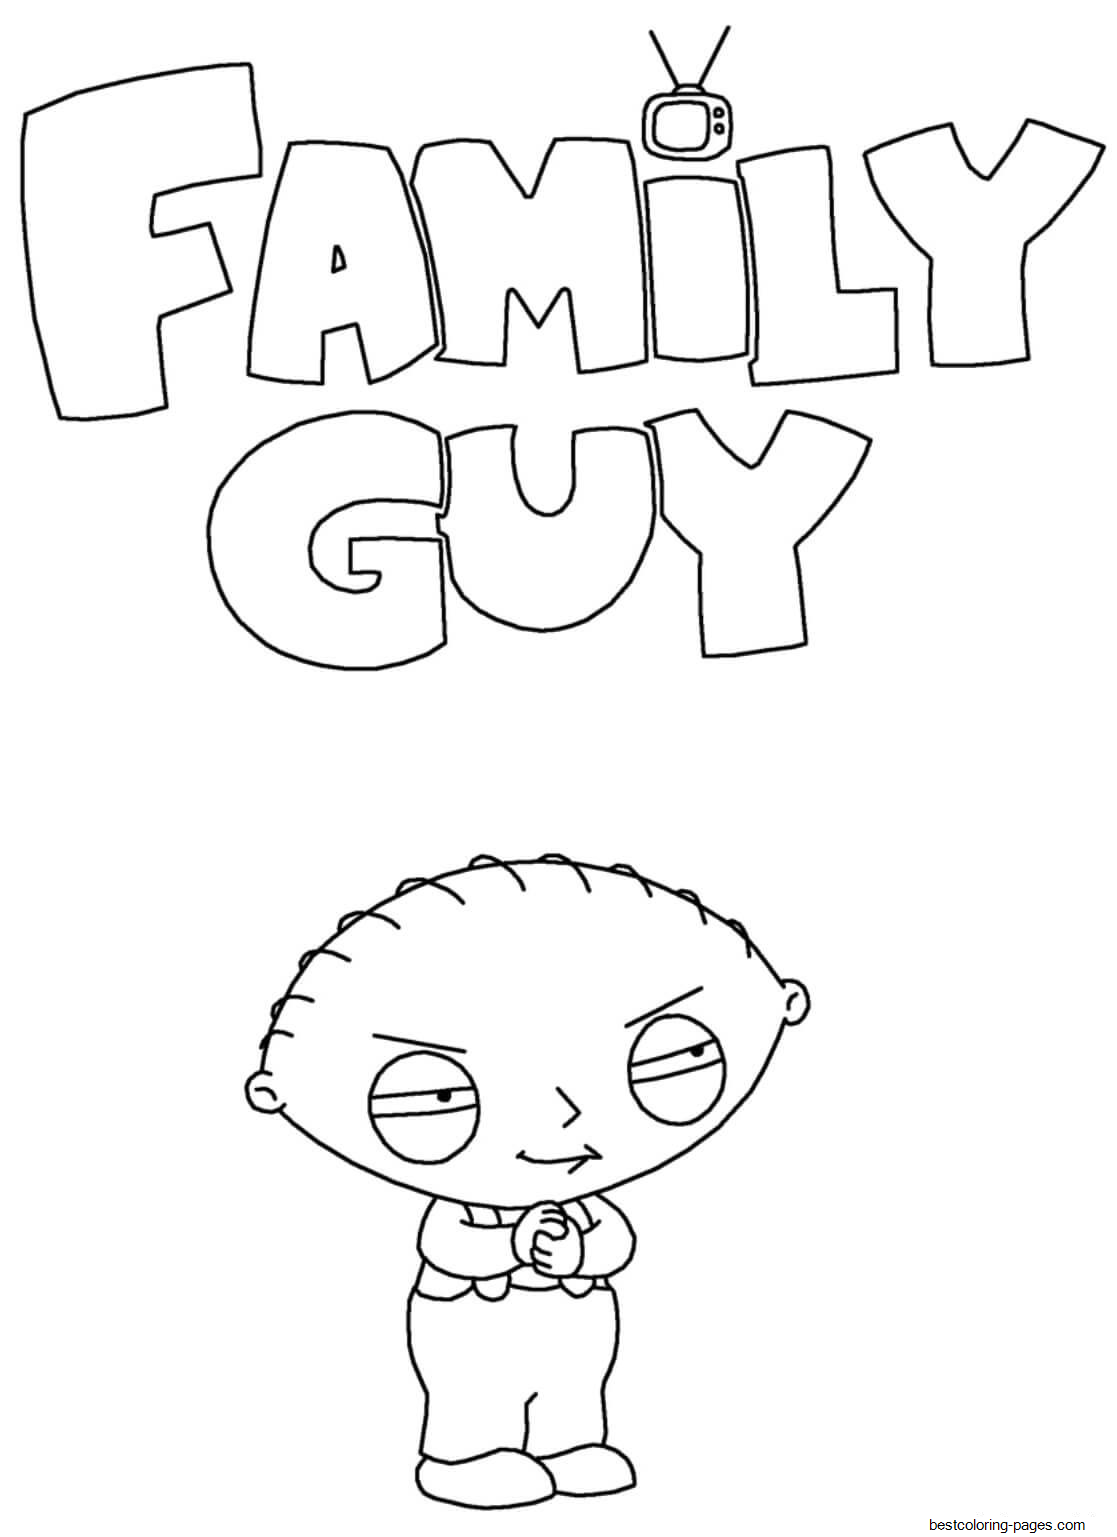 family guy coloring 34 family guy coloring pages mihrimahasya coloring kids family coloring guy